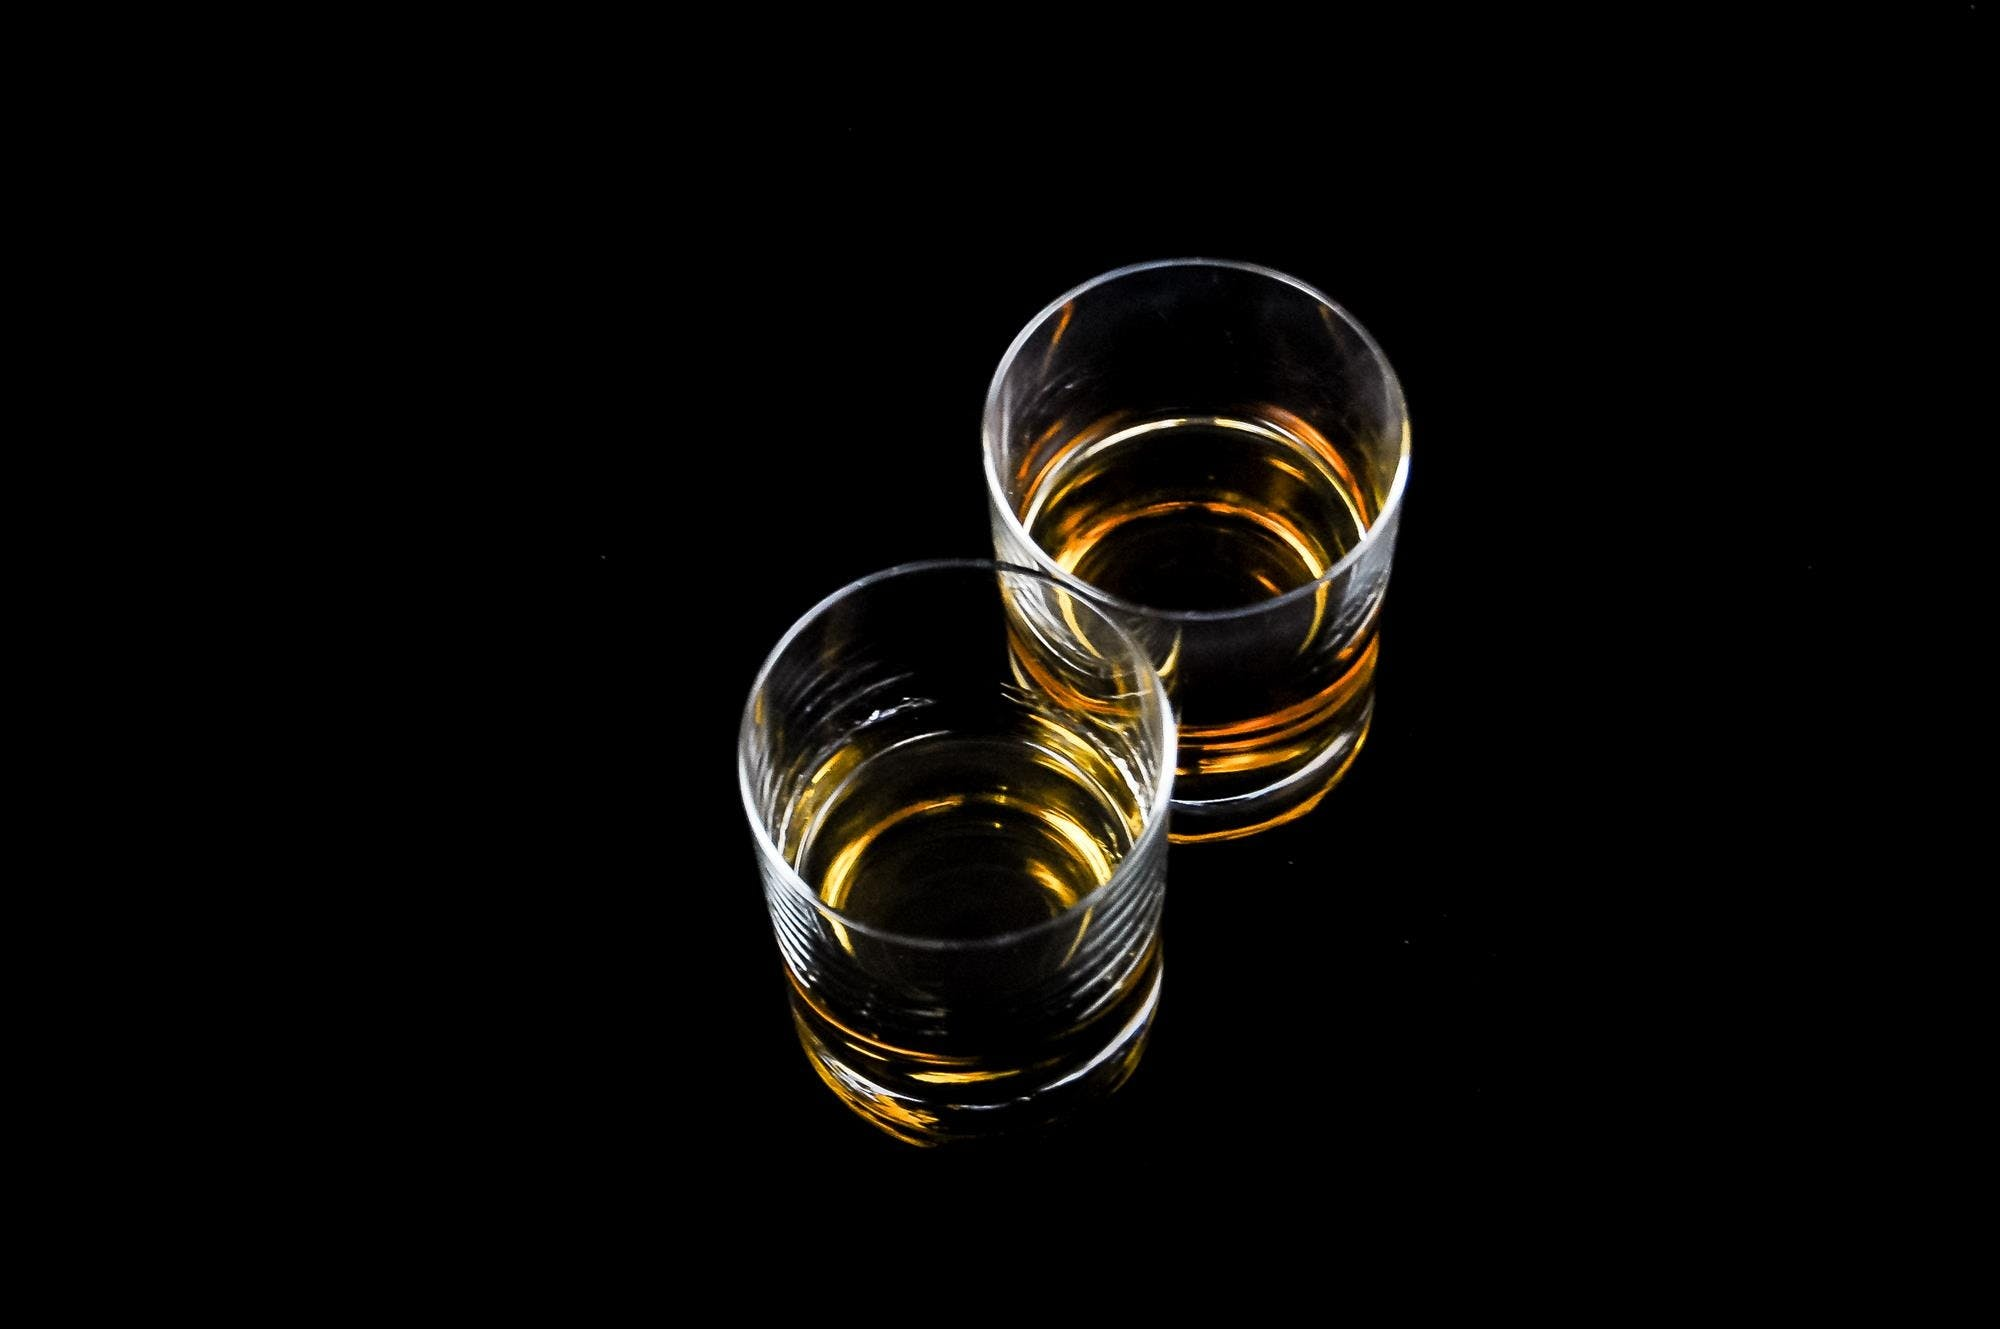 Free stock photo of drink, whiskey, brandy, alcoholic beverages